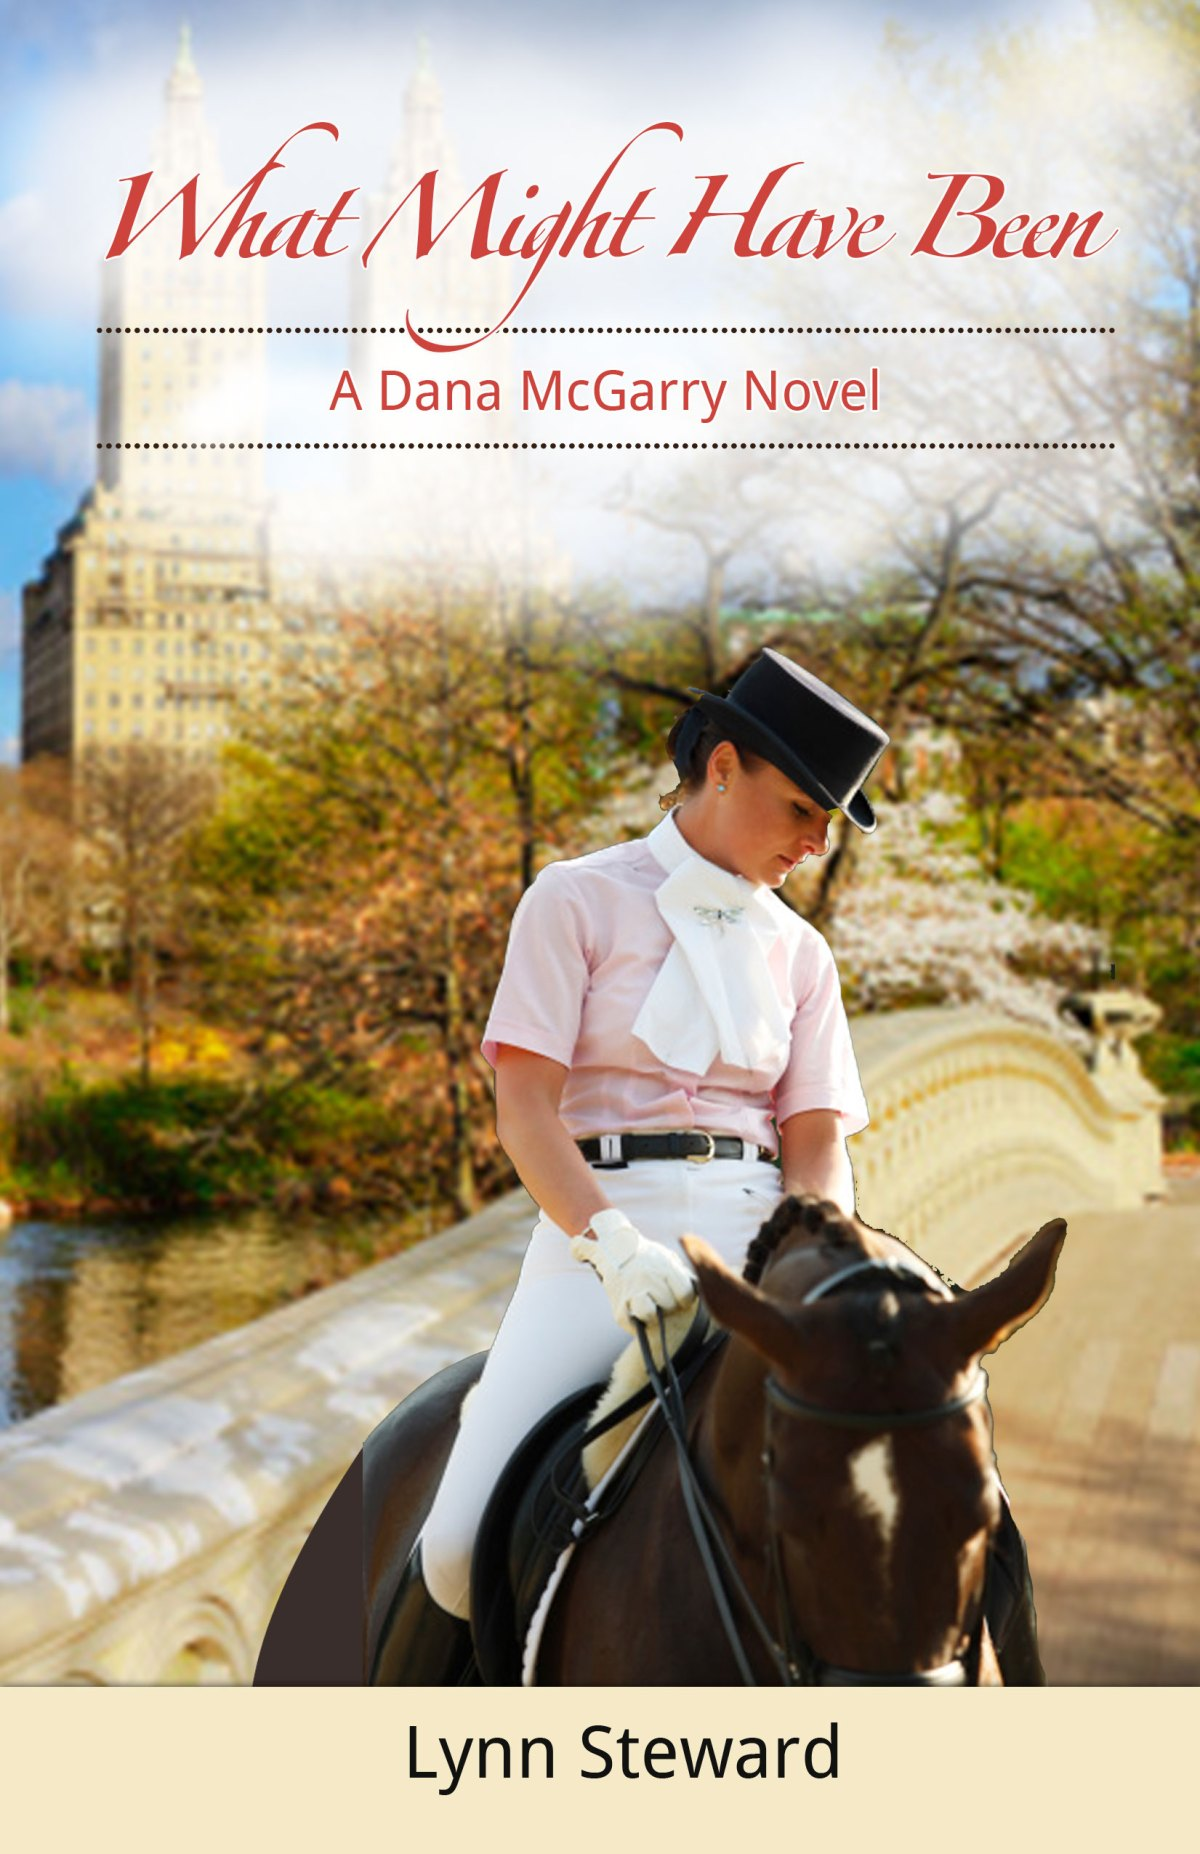 What Might Have Been by Lynn Steward #GuestPost